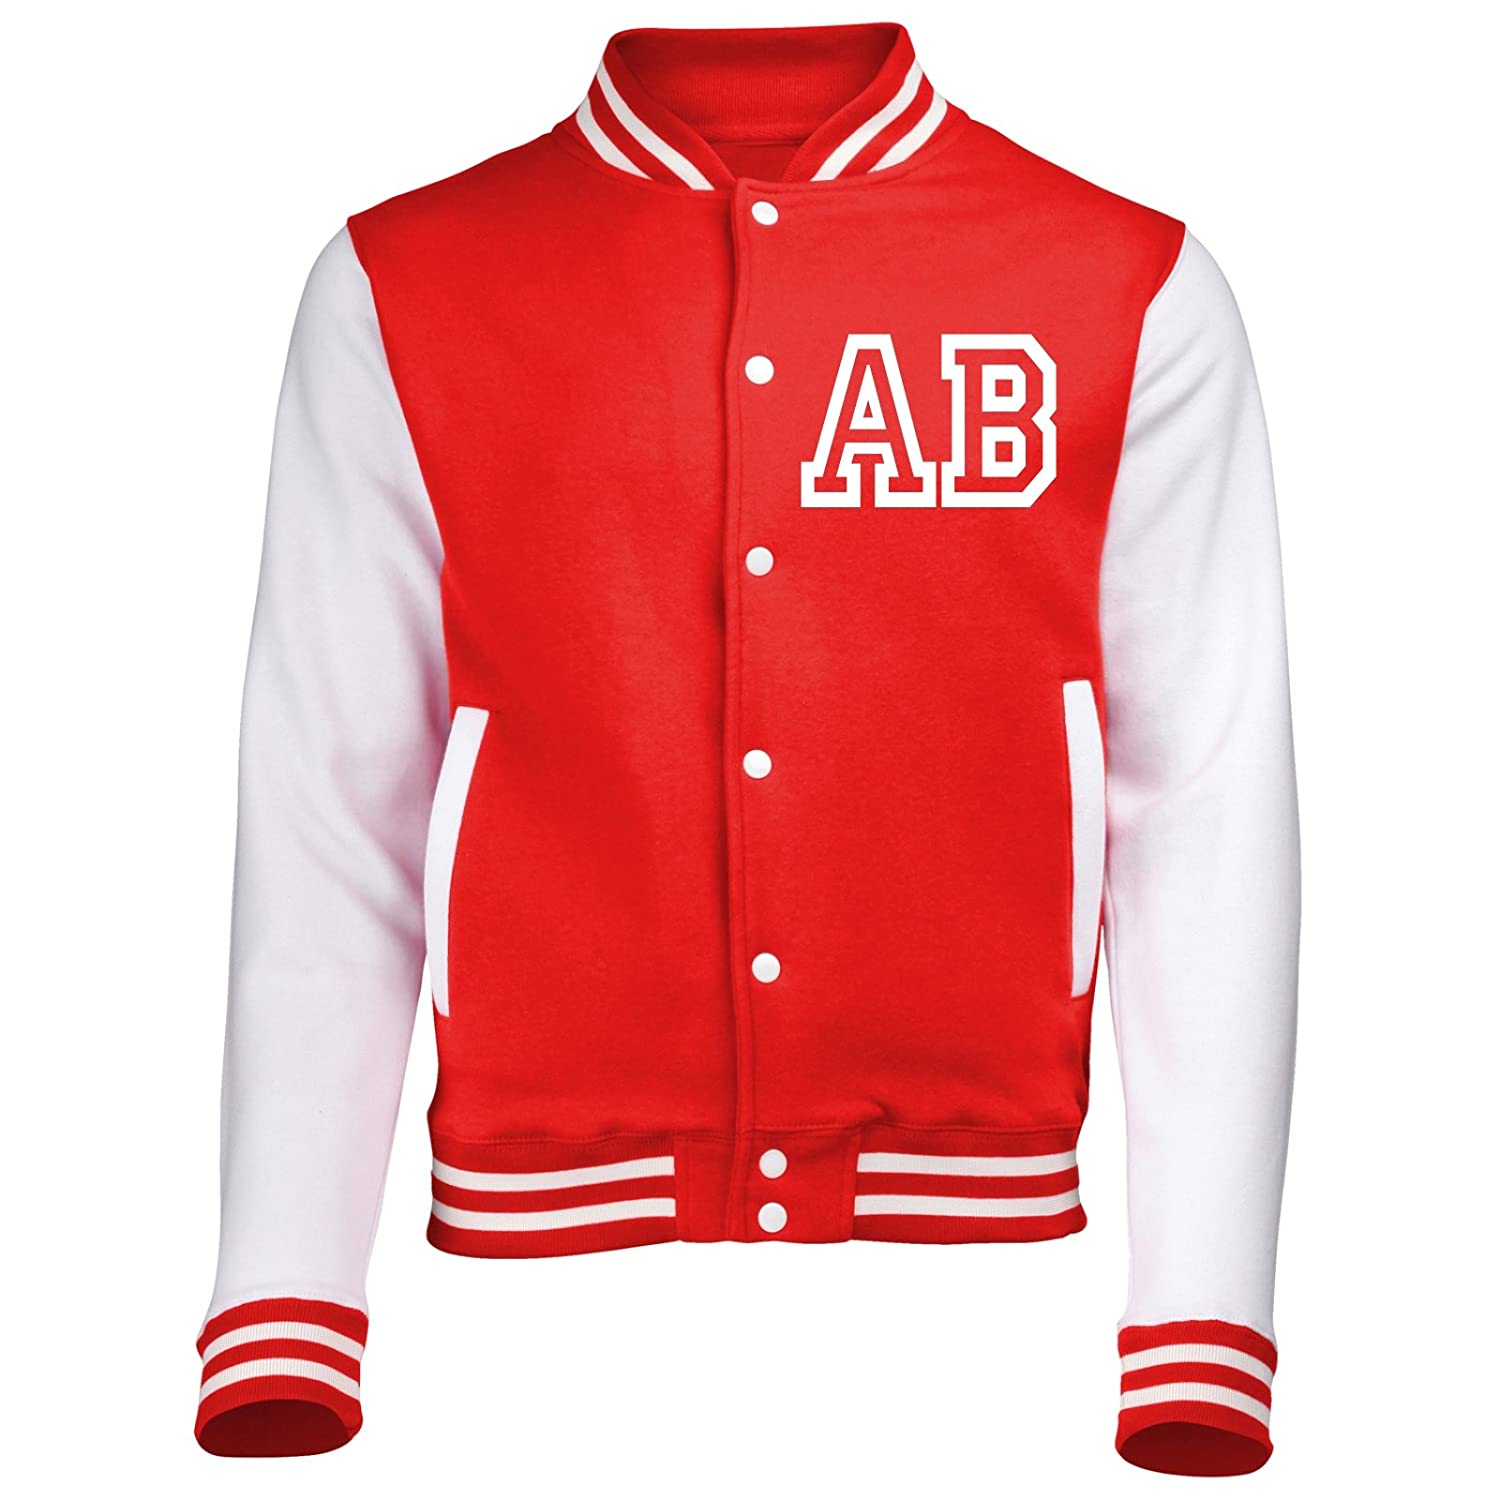 KIDS VARSITY JACKET WITH FRONT INITIAL PERSONALISATION (Fire Red / White) By 123t Fonfella